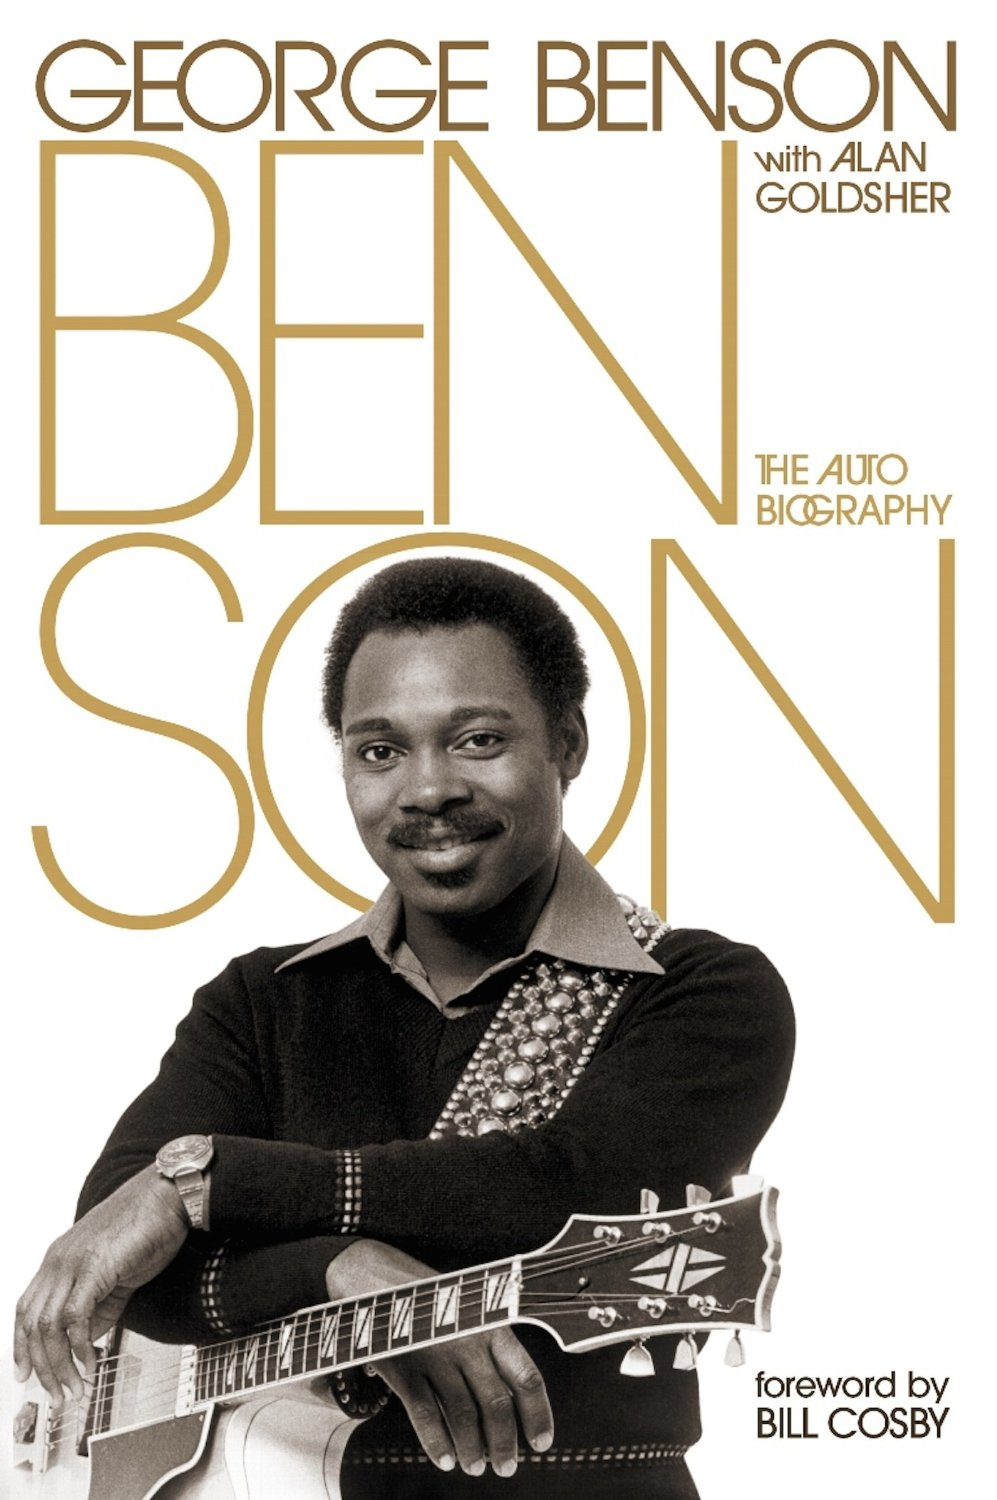 Benson: The Autobiography by George Benson with Alan Goldsher